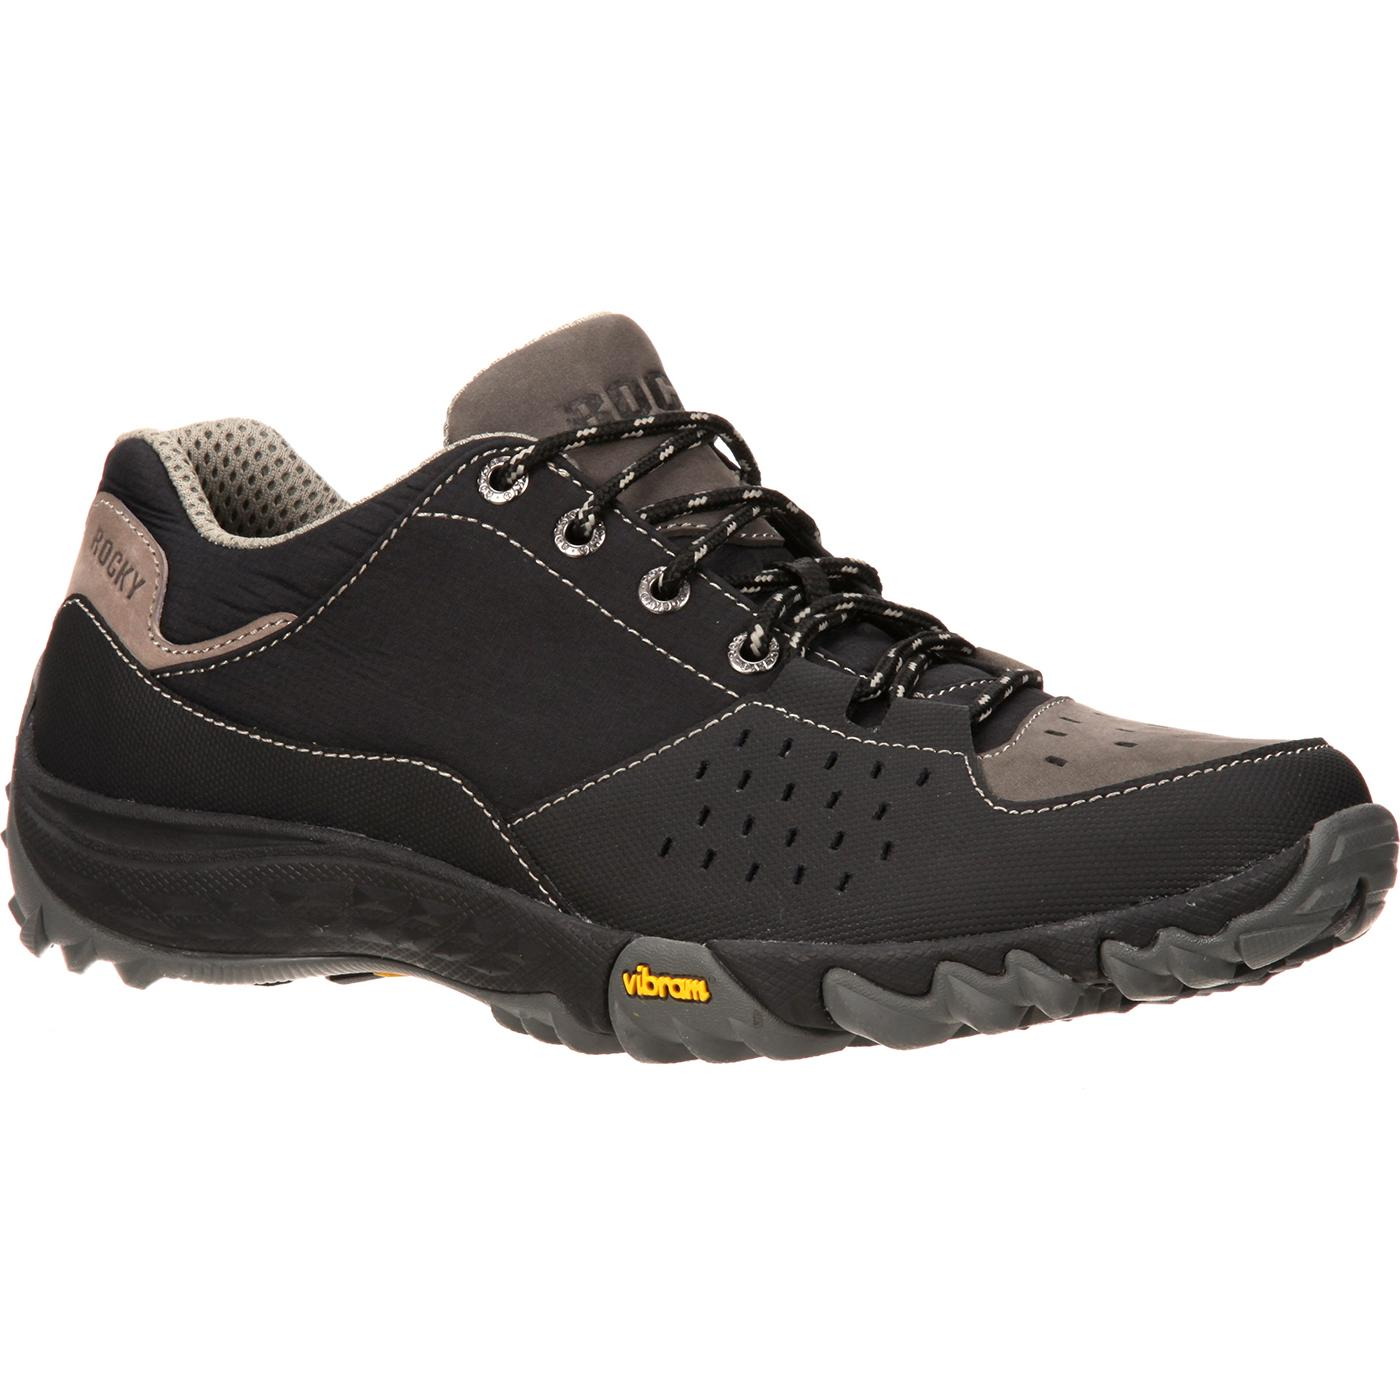 Arco Safety Shoes Uk